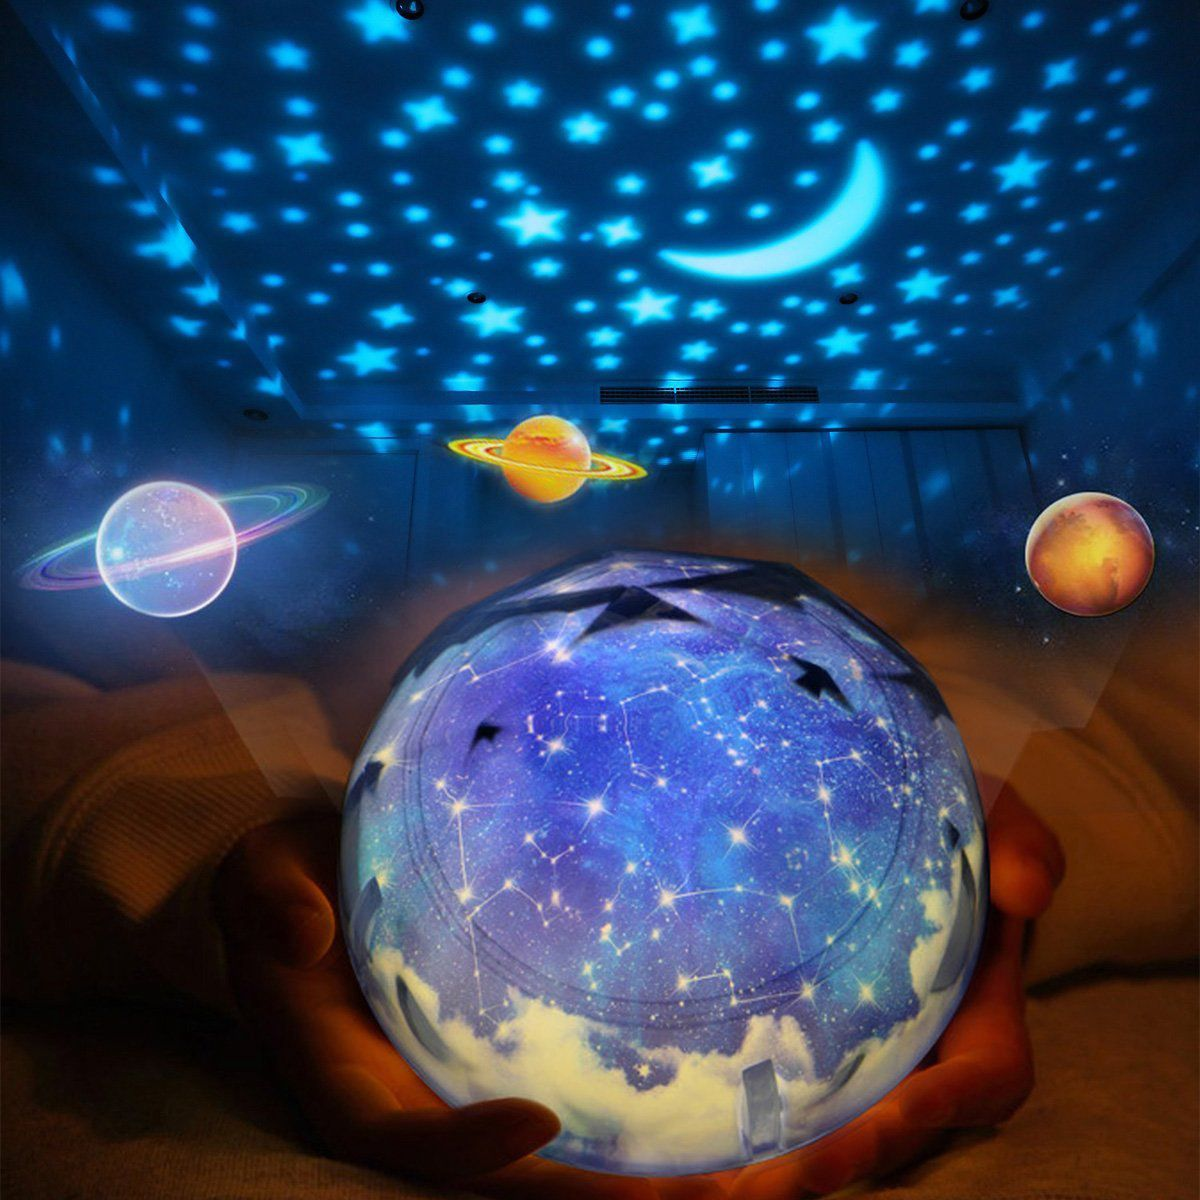 Star Night Lights For Kids Universe Cosmos Starry Sky Light LED Projector Rotating Lamp Nightlight Moon Sea World Decorative